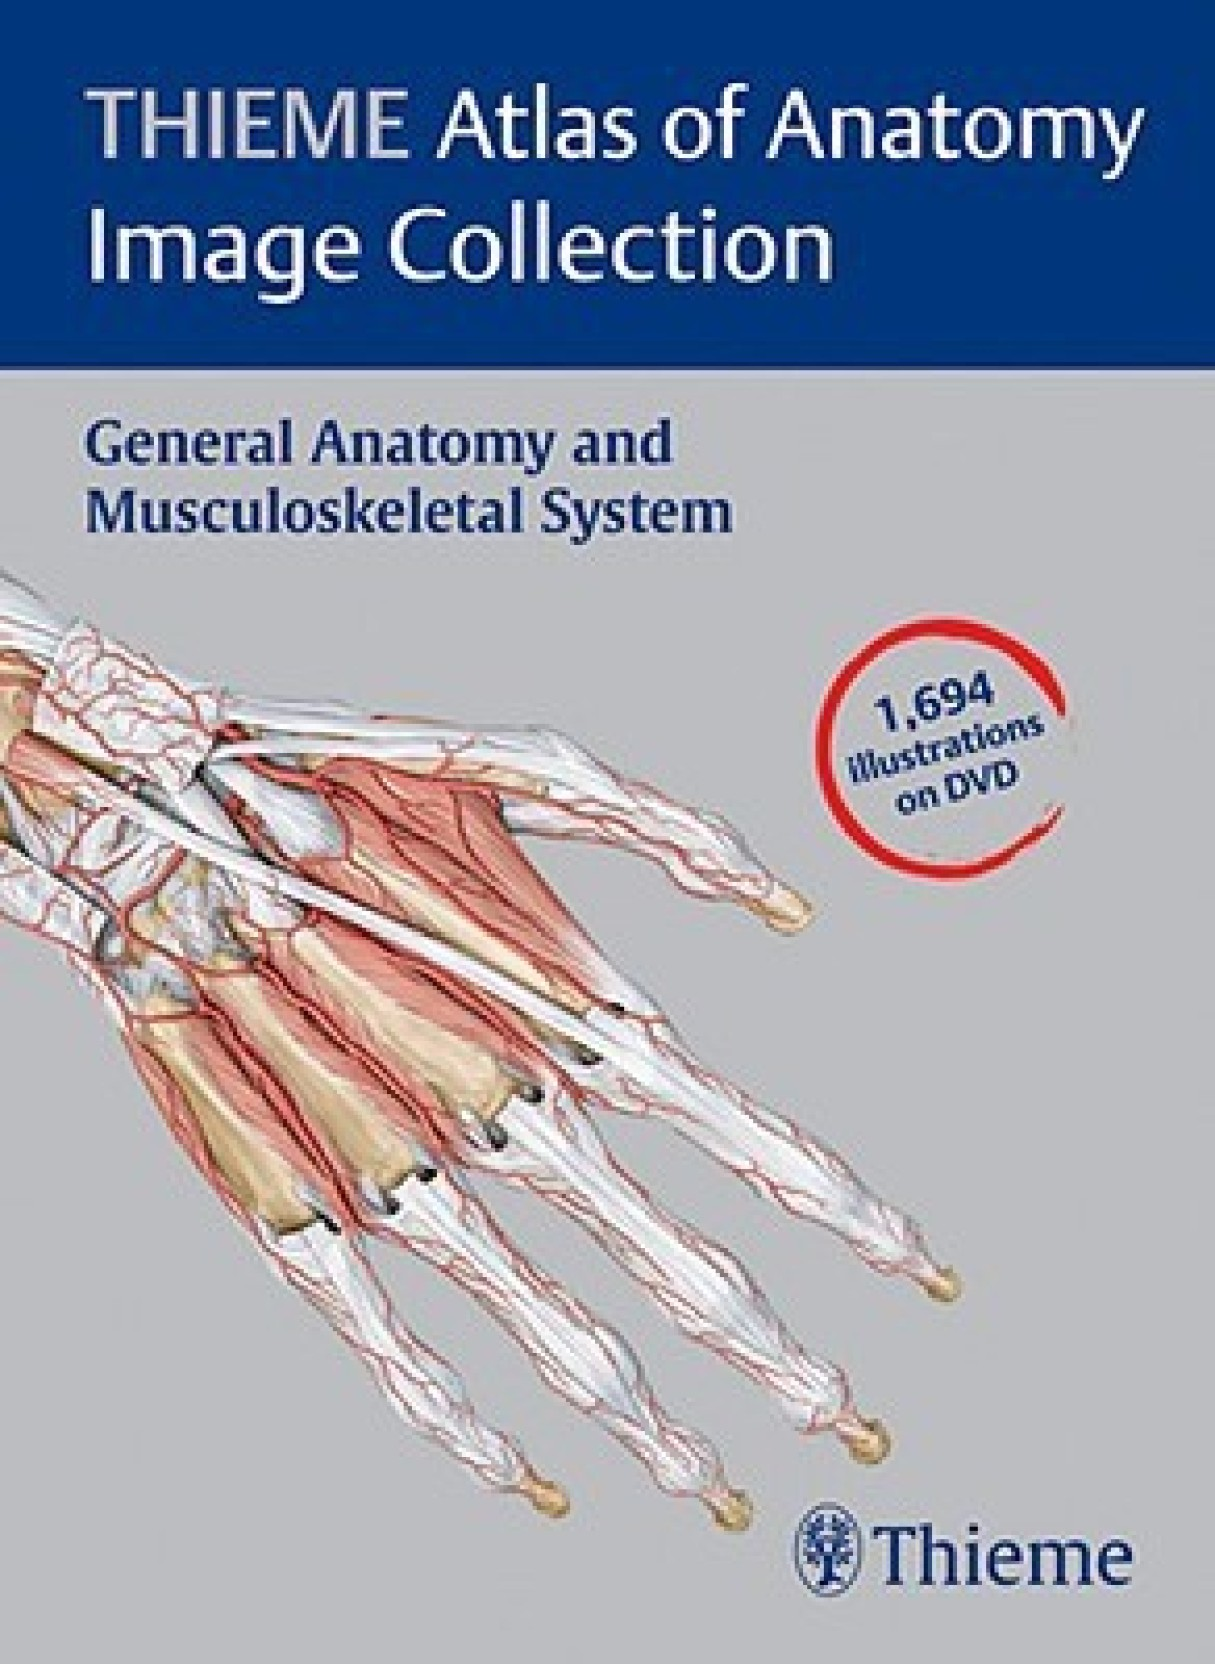 THIEME Atlas of Anatomy Image Collection: General Anatomy and ...